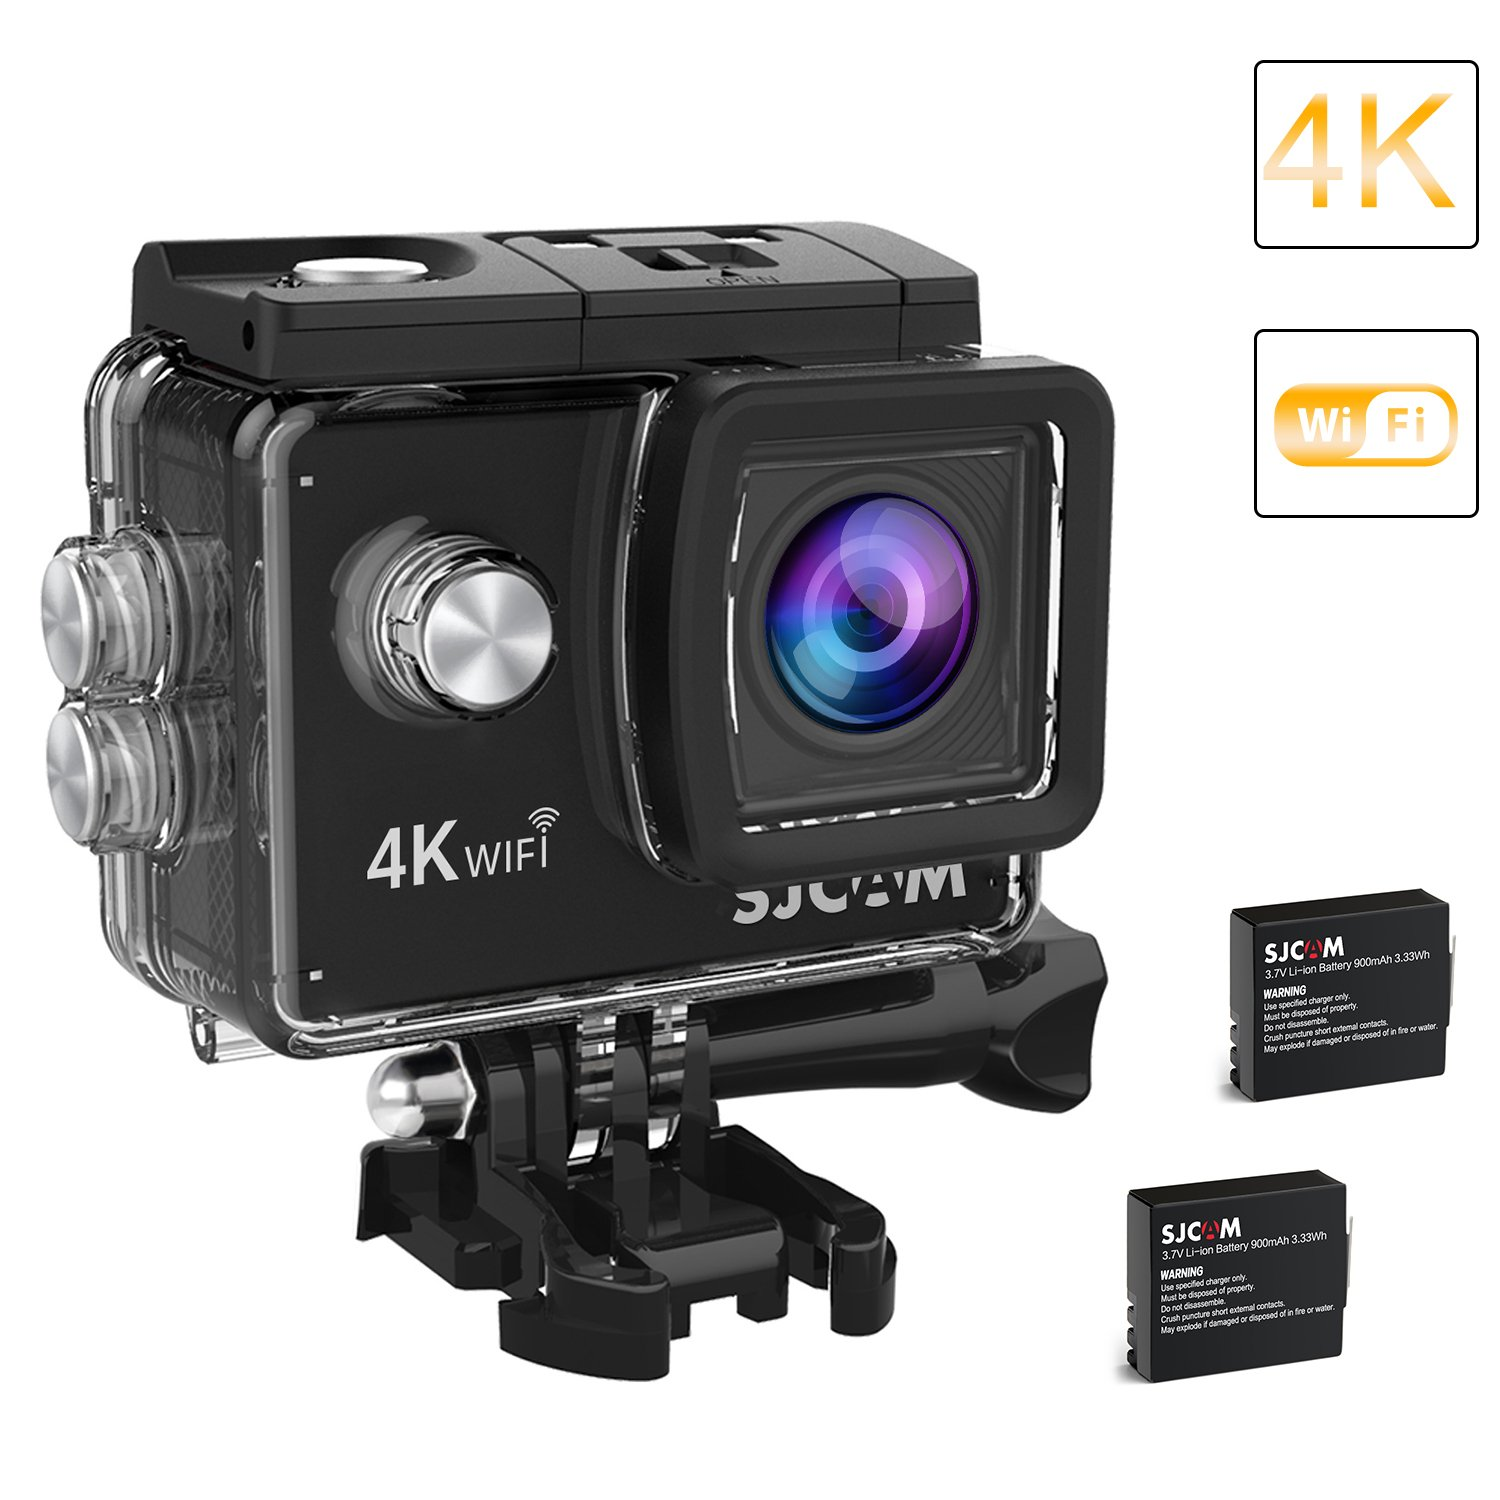 2018-Original SJCAM SJ4000 Air Action Camera 4K WIFI Underwater Cam 16MP Ultra HD Waterproof Sports Camera 170°Wide-angle 2 Inch LCD Plus 2 Rechargeable 900mAh Batteries and Mounting Accessories Kit by HuRoyal